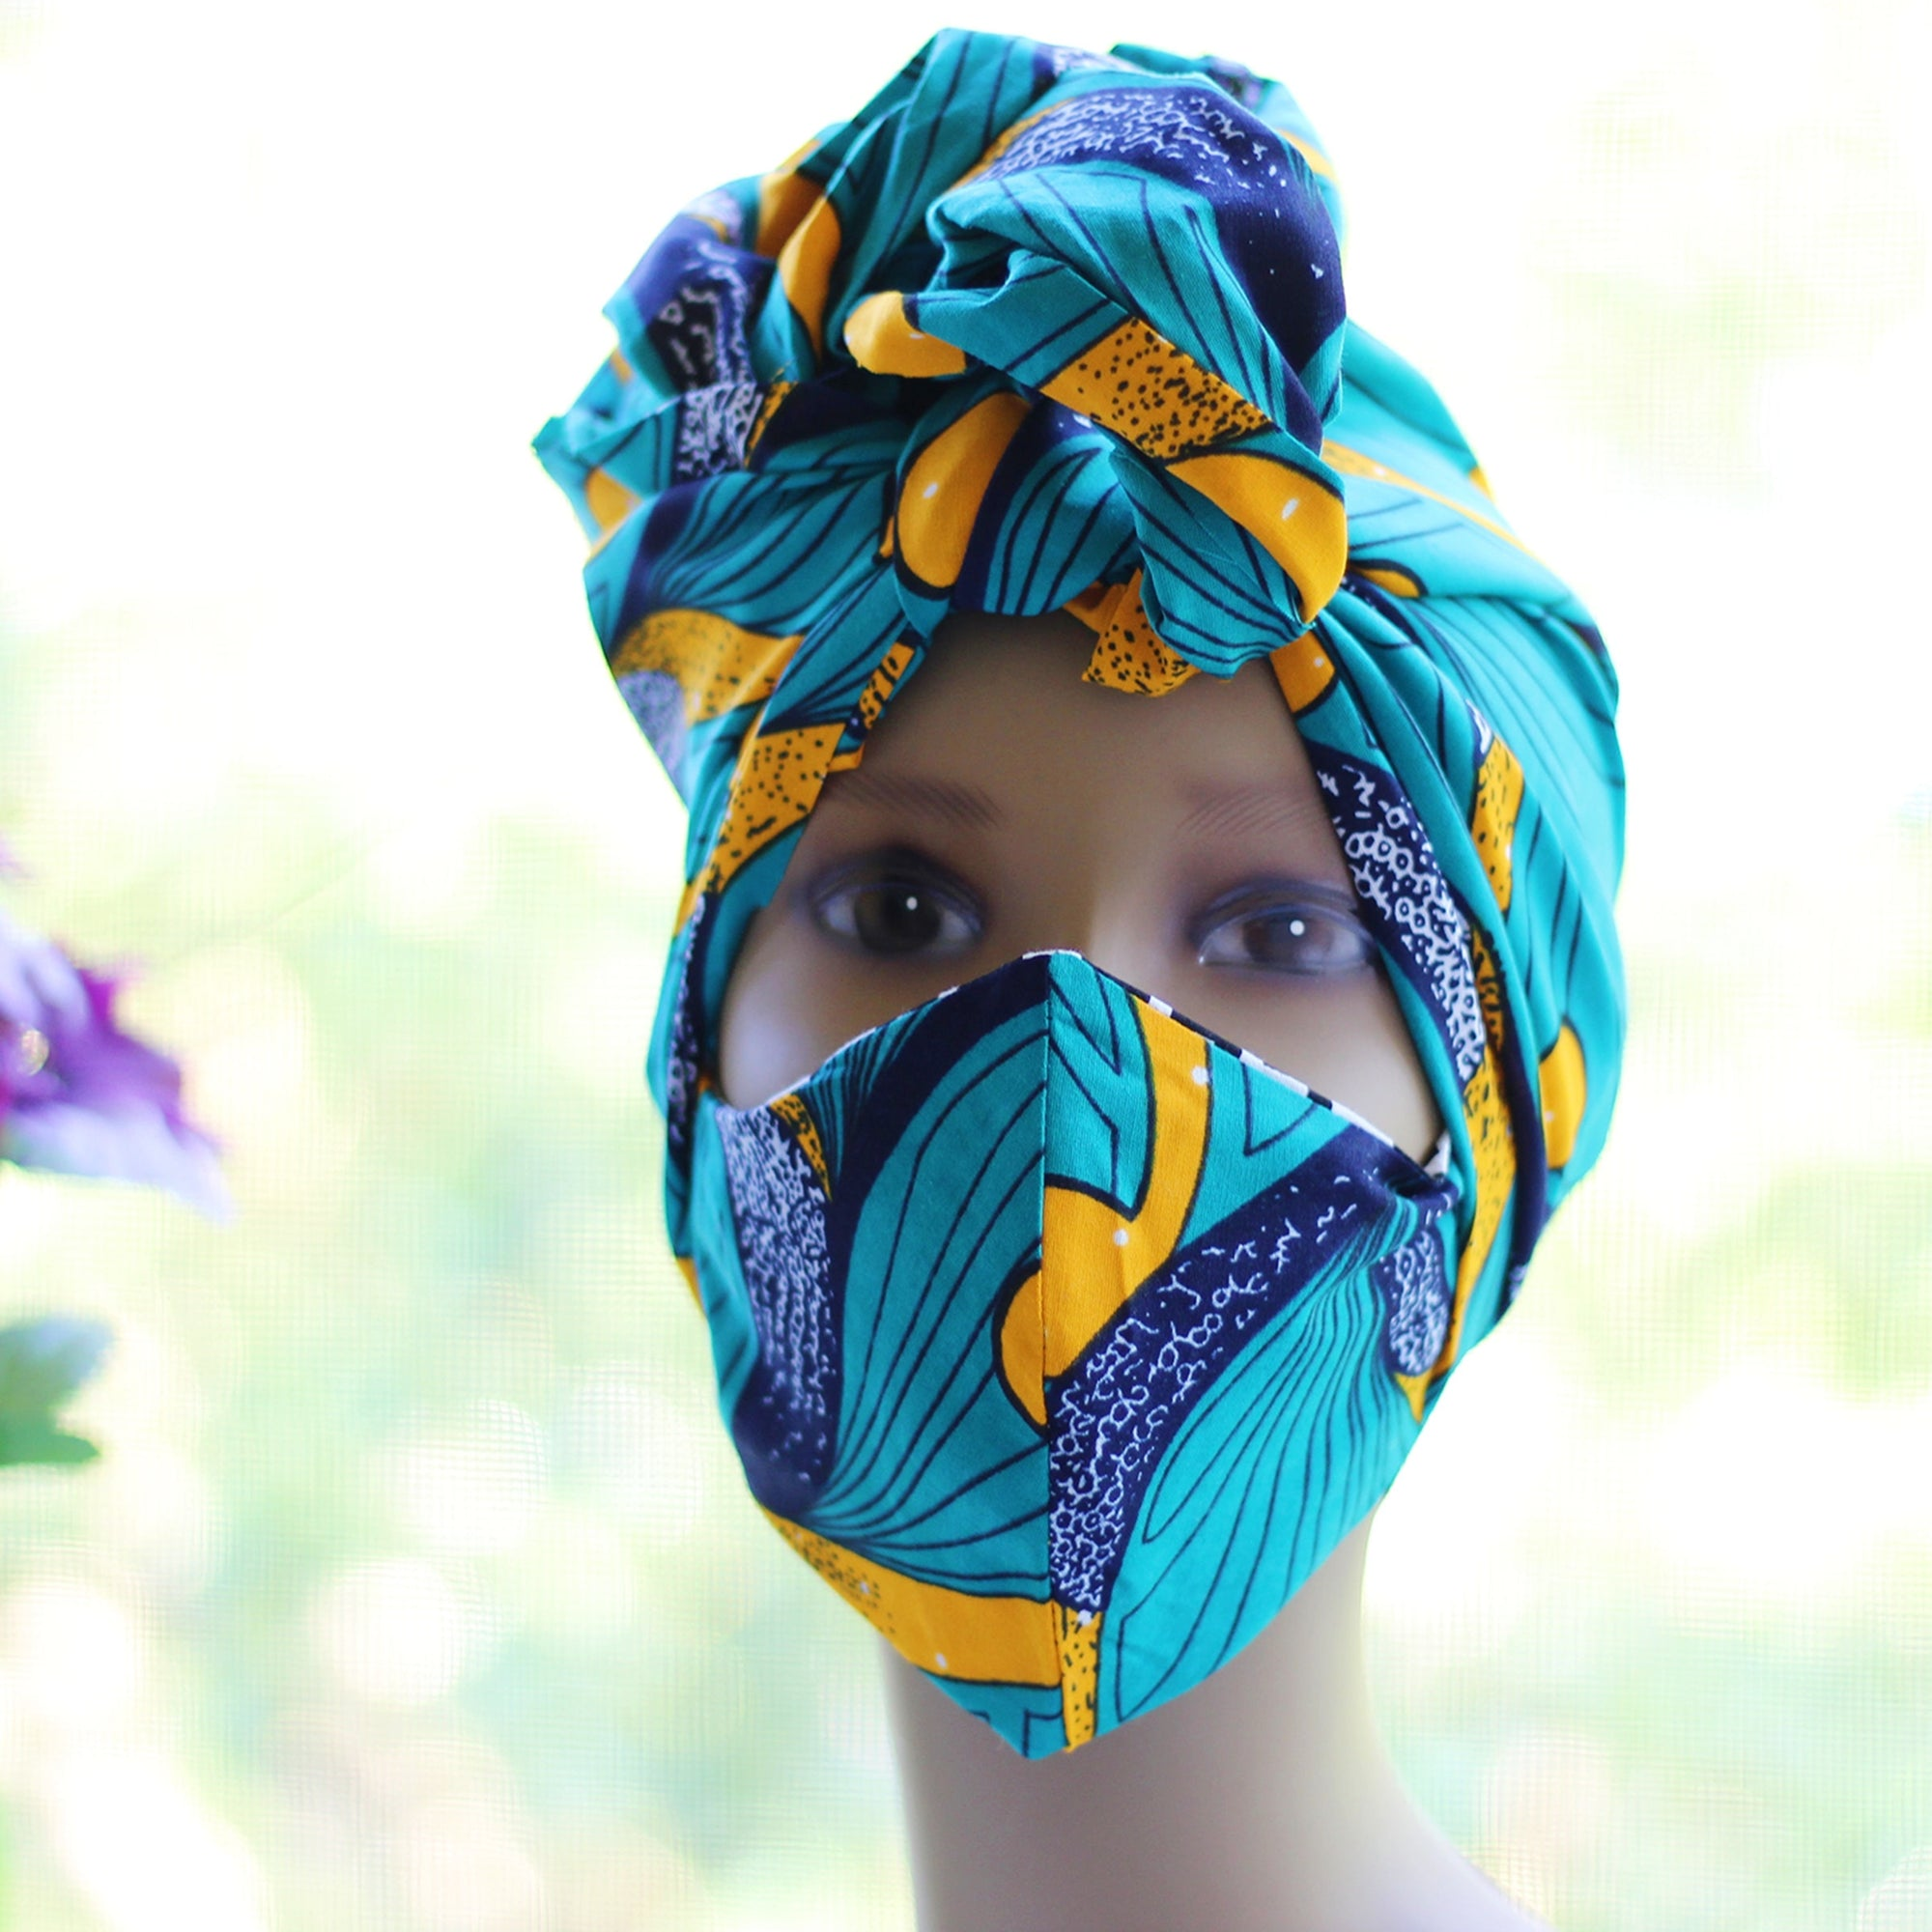 Ankara /African Print Mask (Headwrap Set) - Teal /Orange / Black Floral  Print - Africas Closet